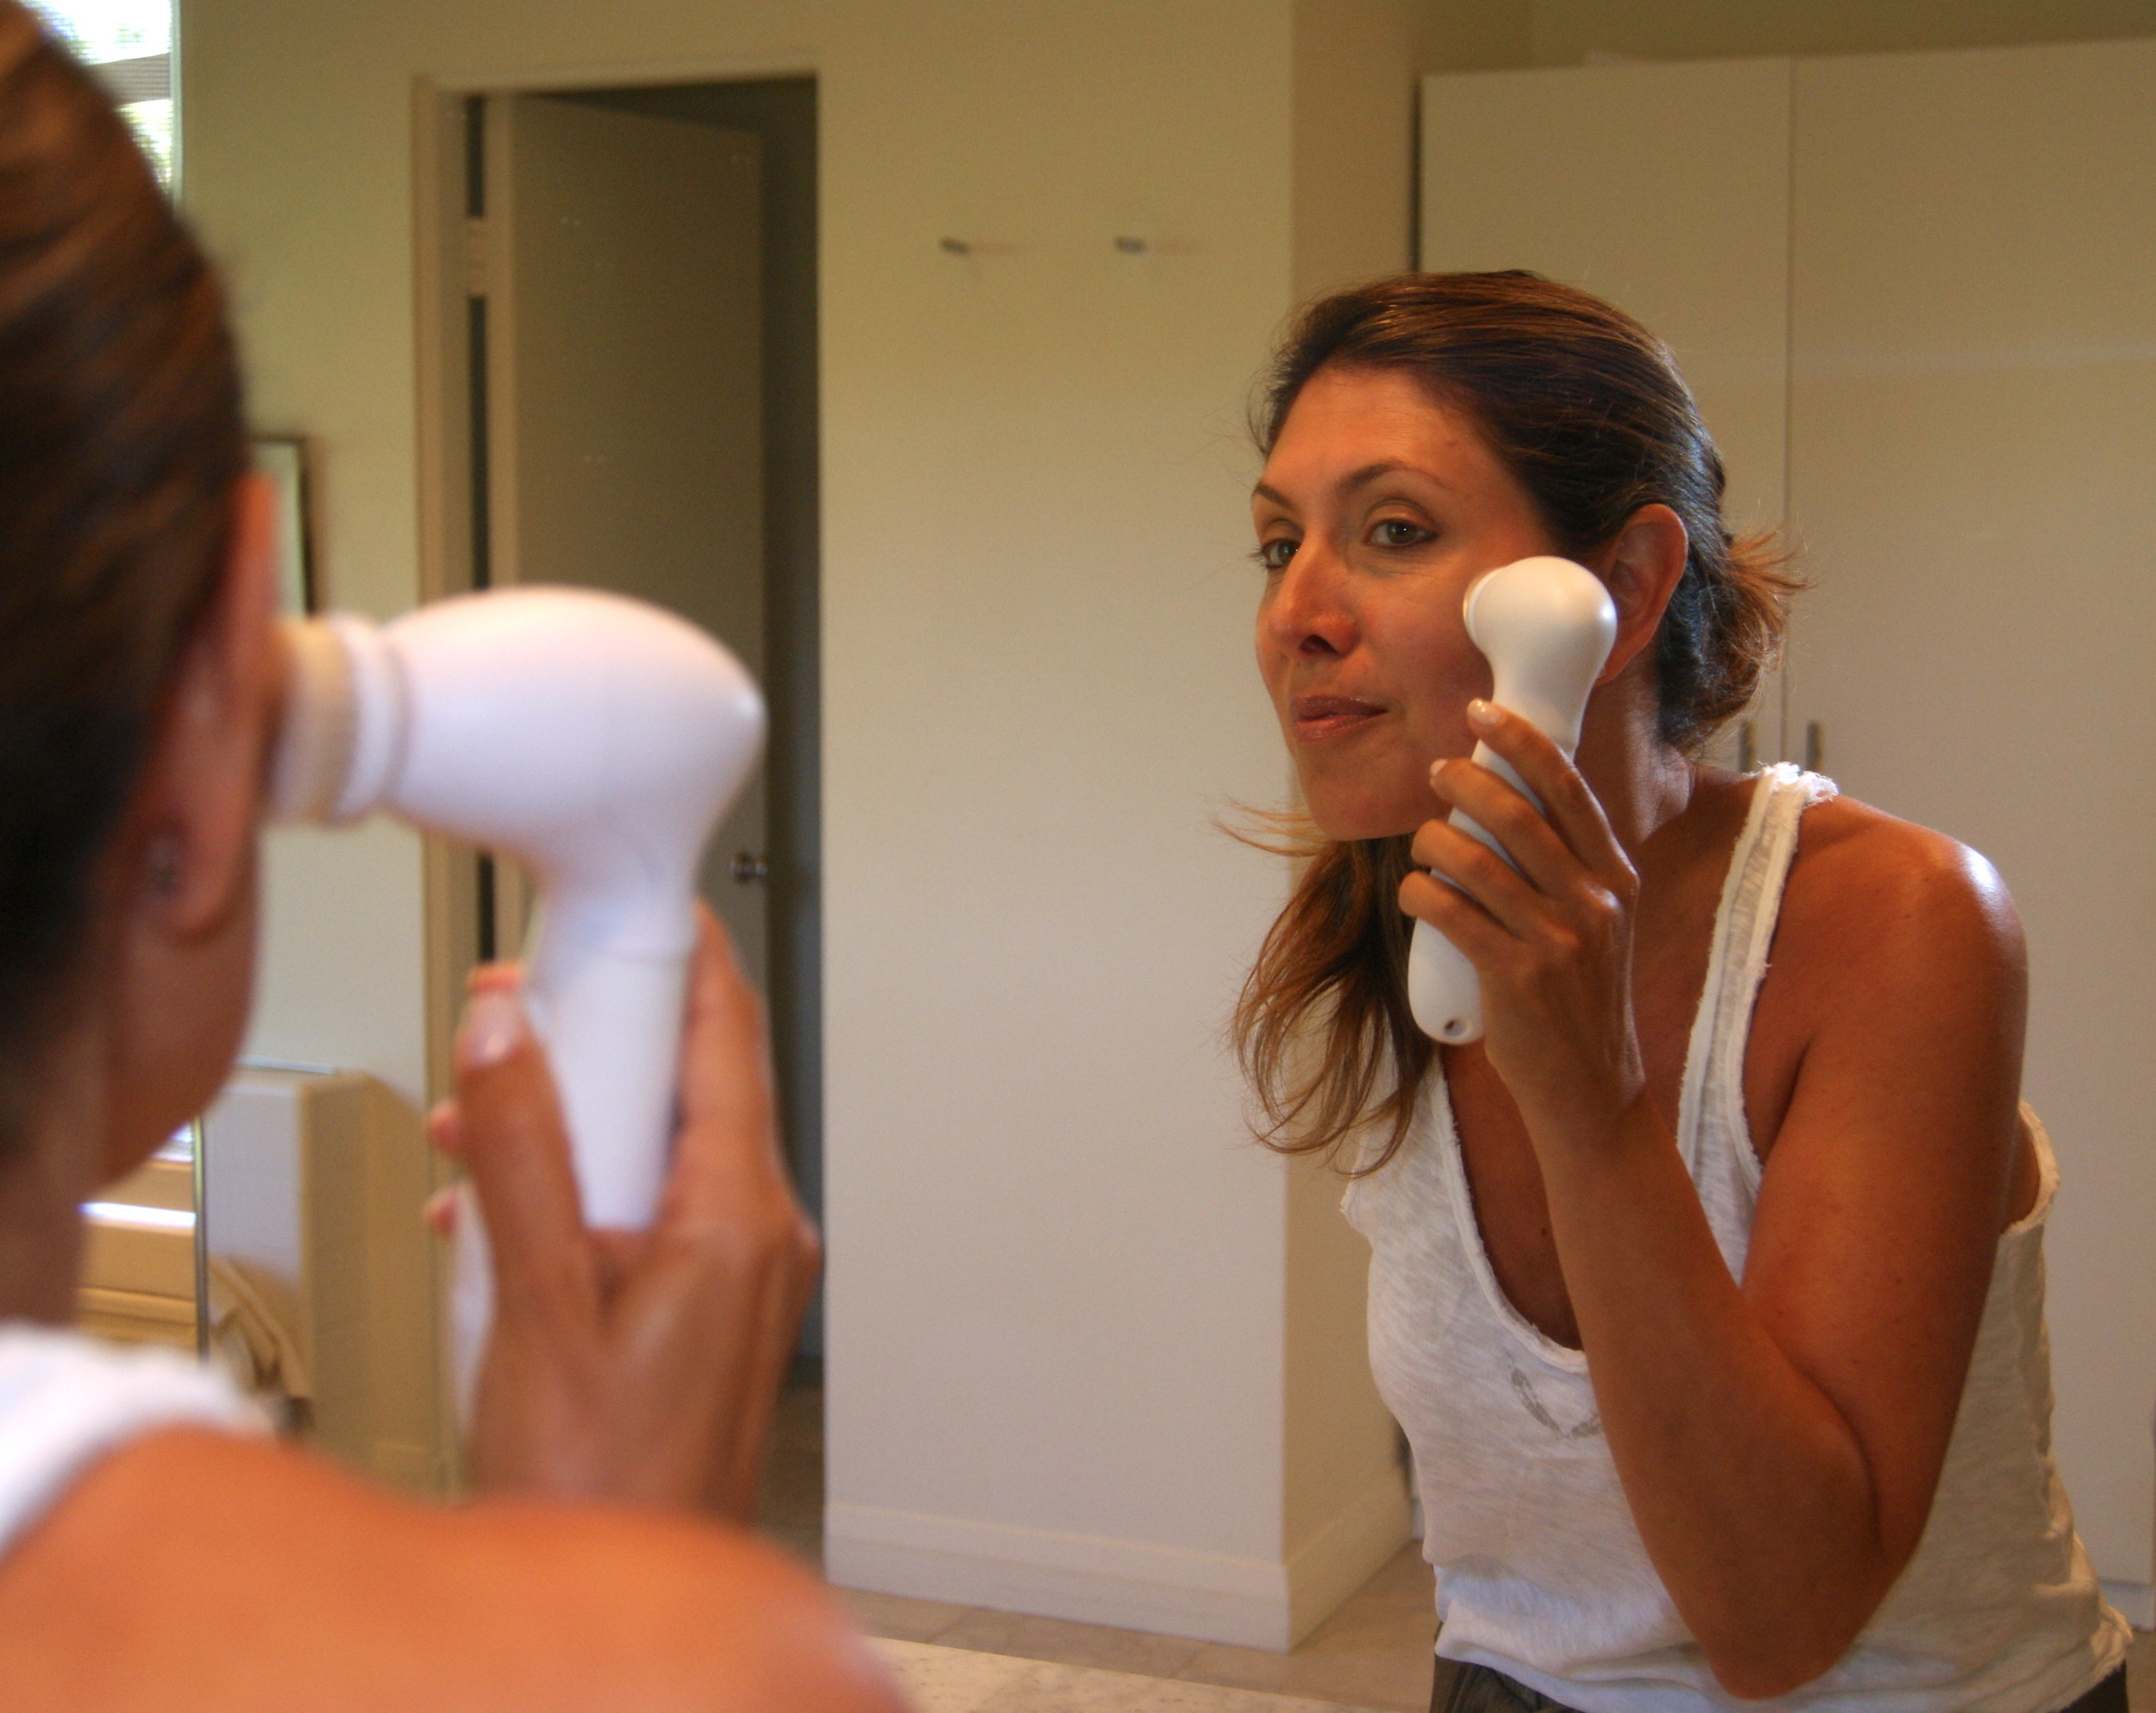 The Spa Sonic's rotating brush is battery-operated and water proof. It gently exfoliates and deep cleans.